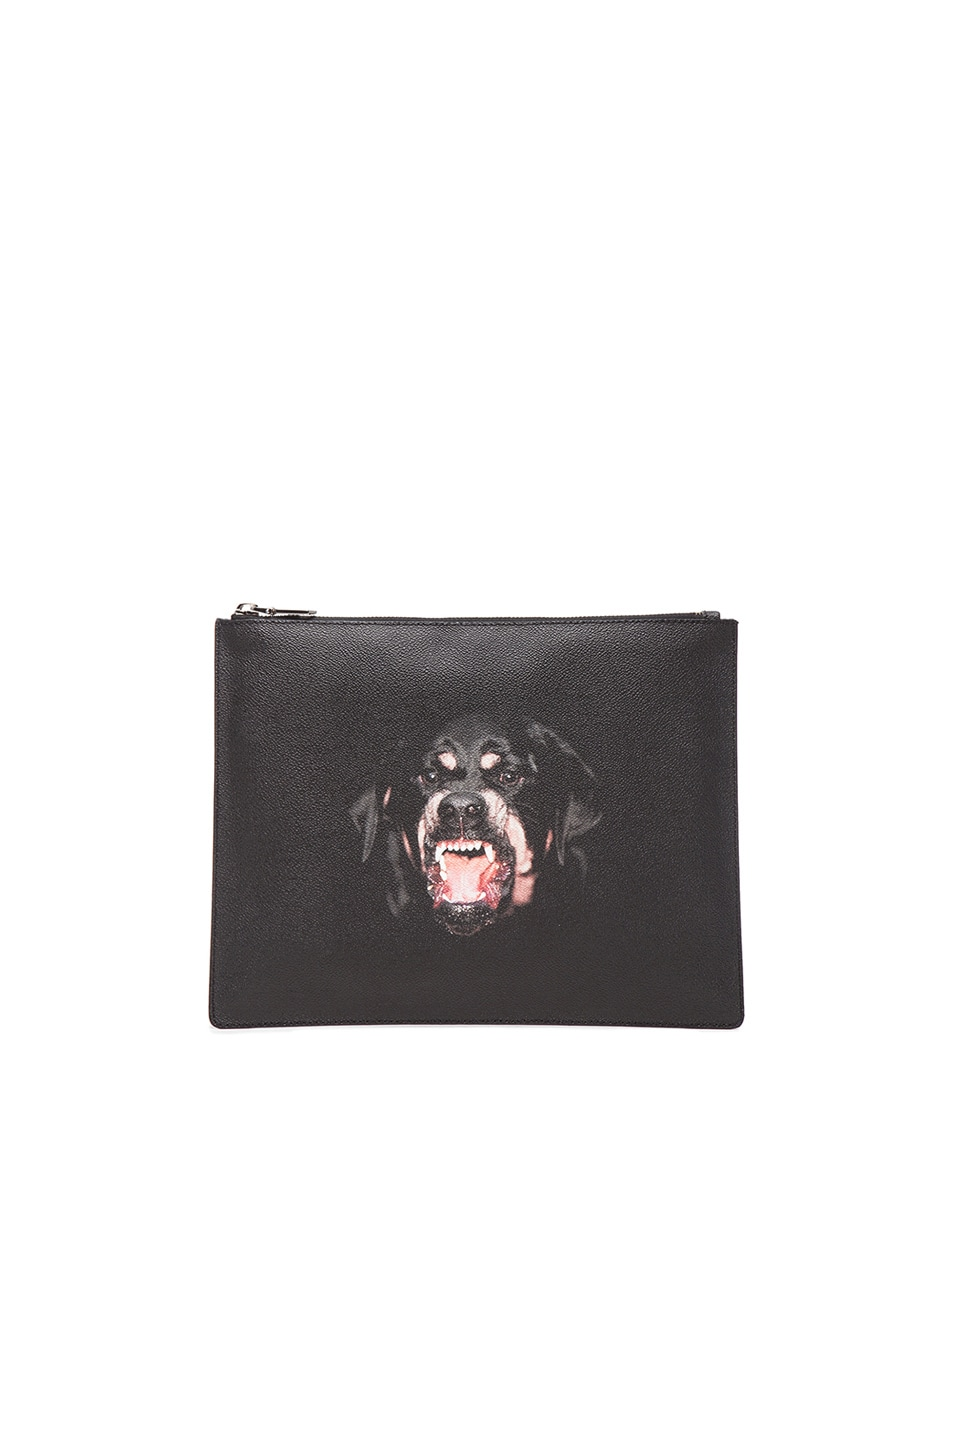 Womens Pouch On Sale, Black, leathe, 2017, one size Givenchy